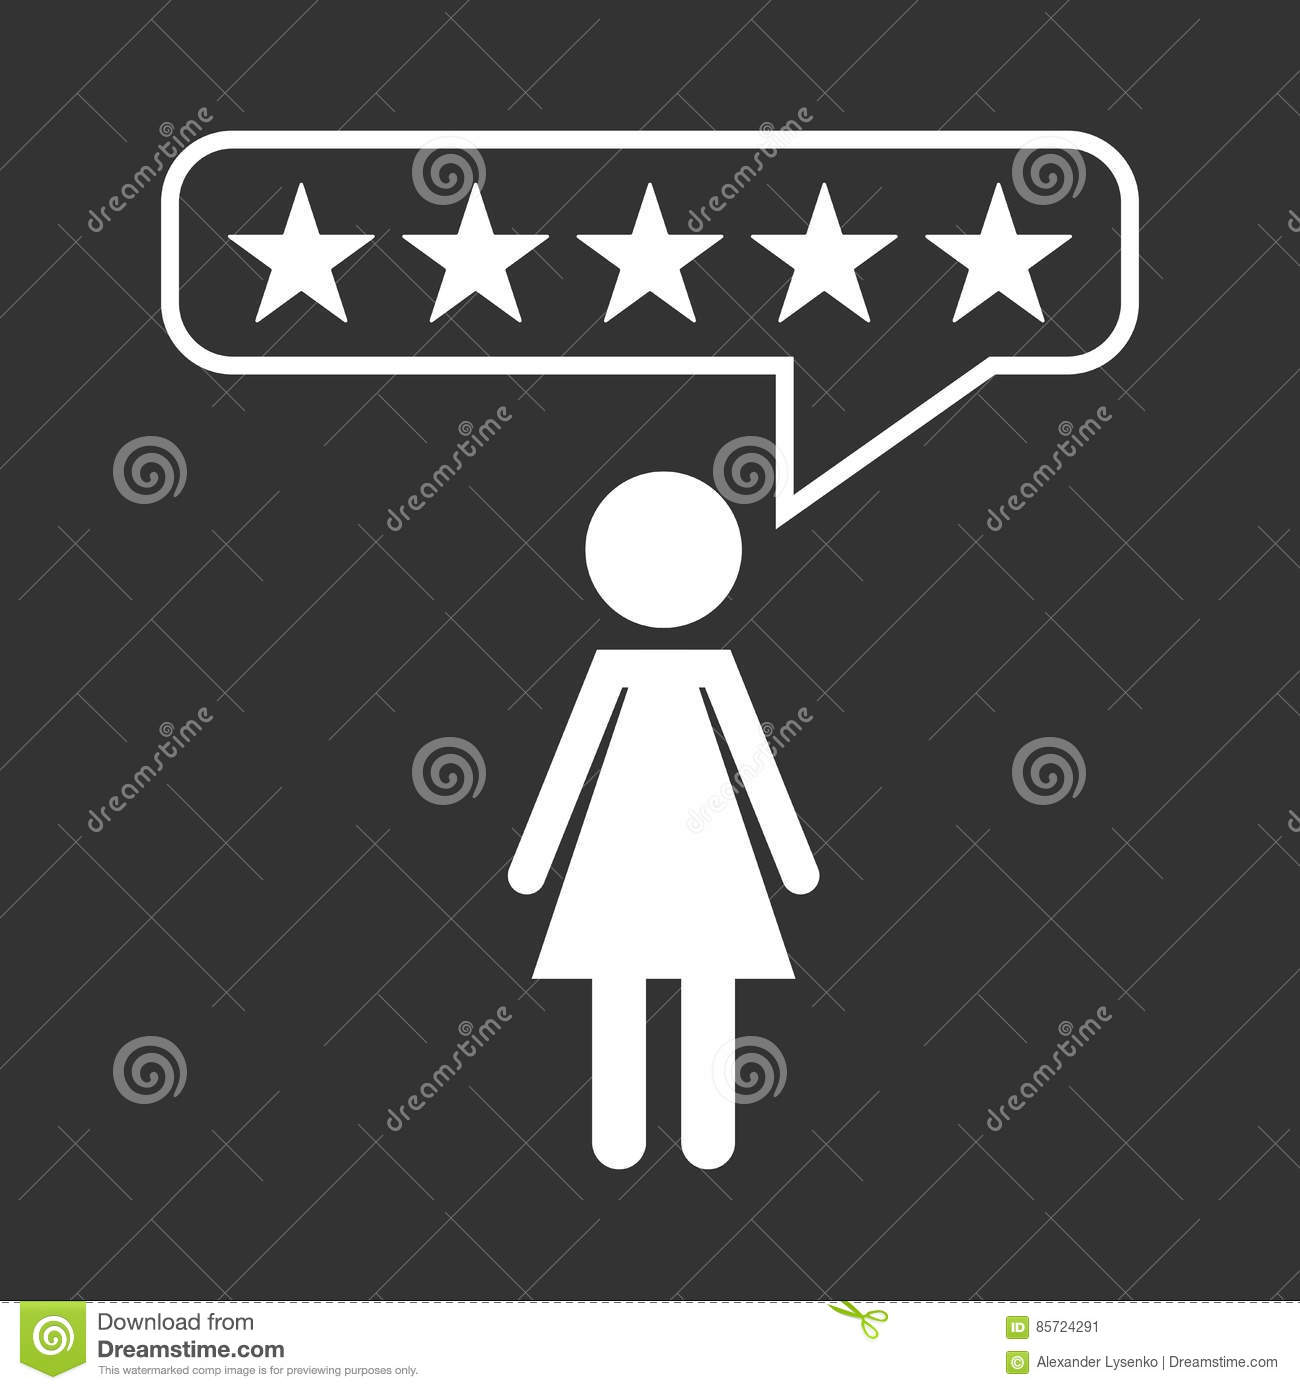 Customer Reviews Rating User Feedback Concept Vector Icon Stock